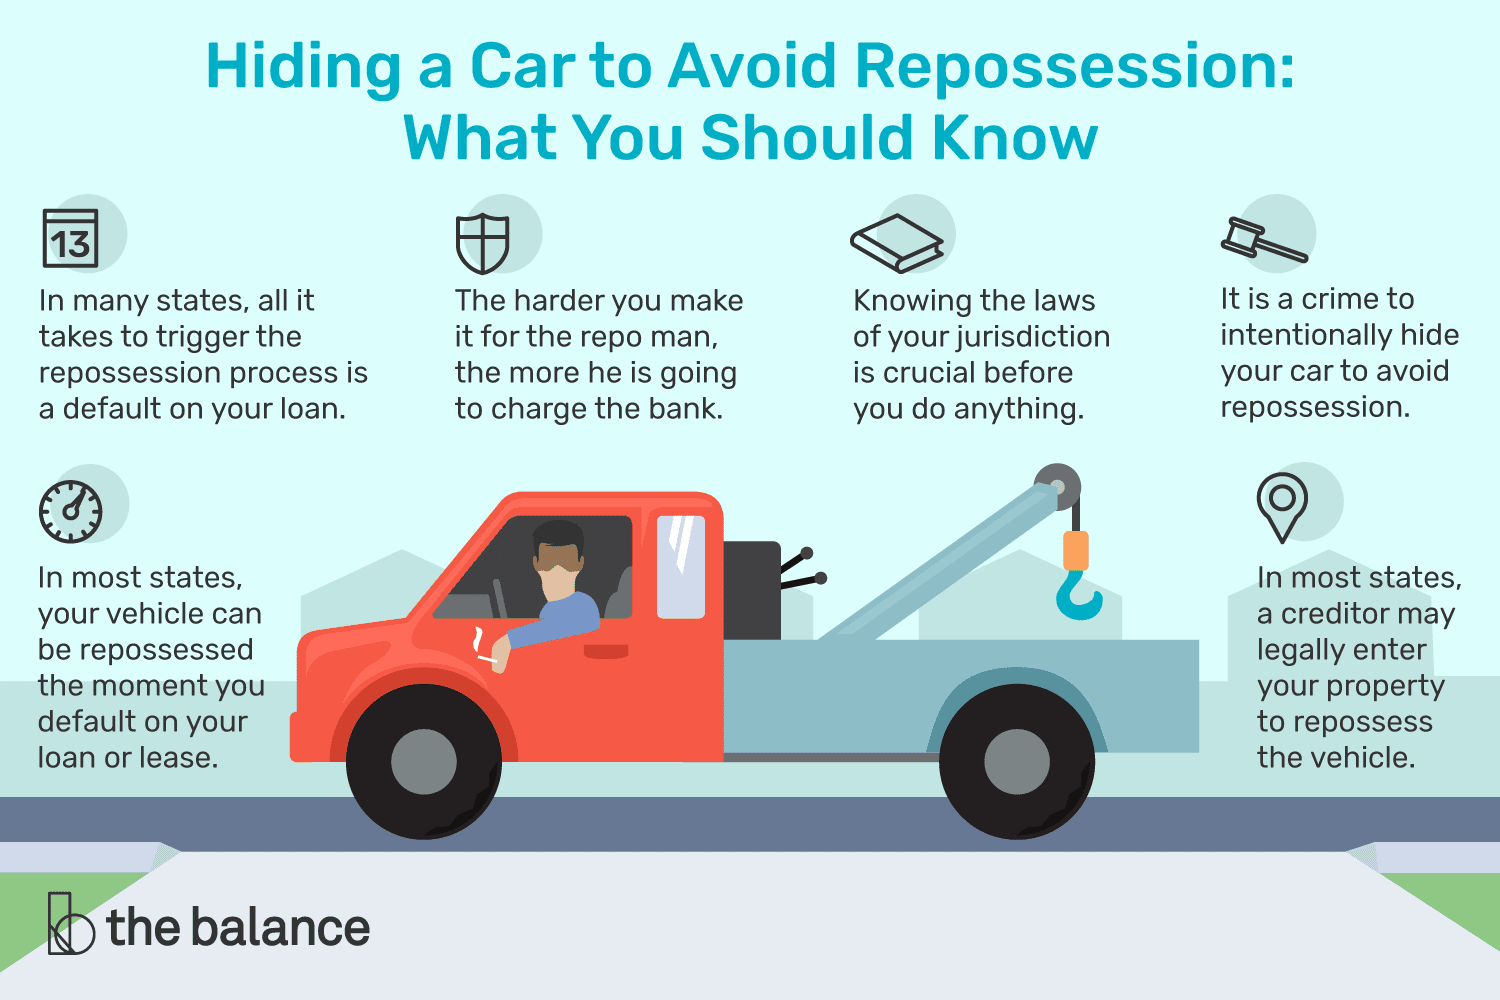 What To Know About Hiding A Car To Avoid Repossession